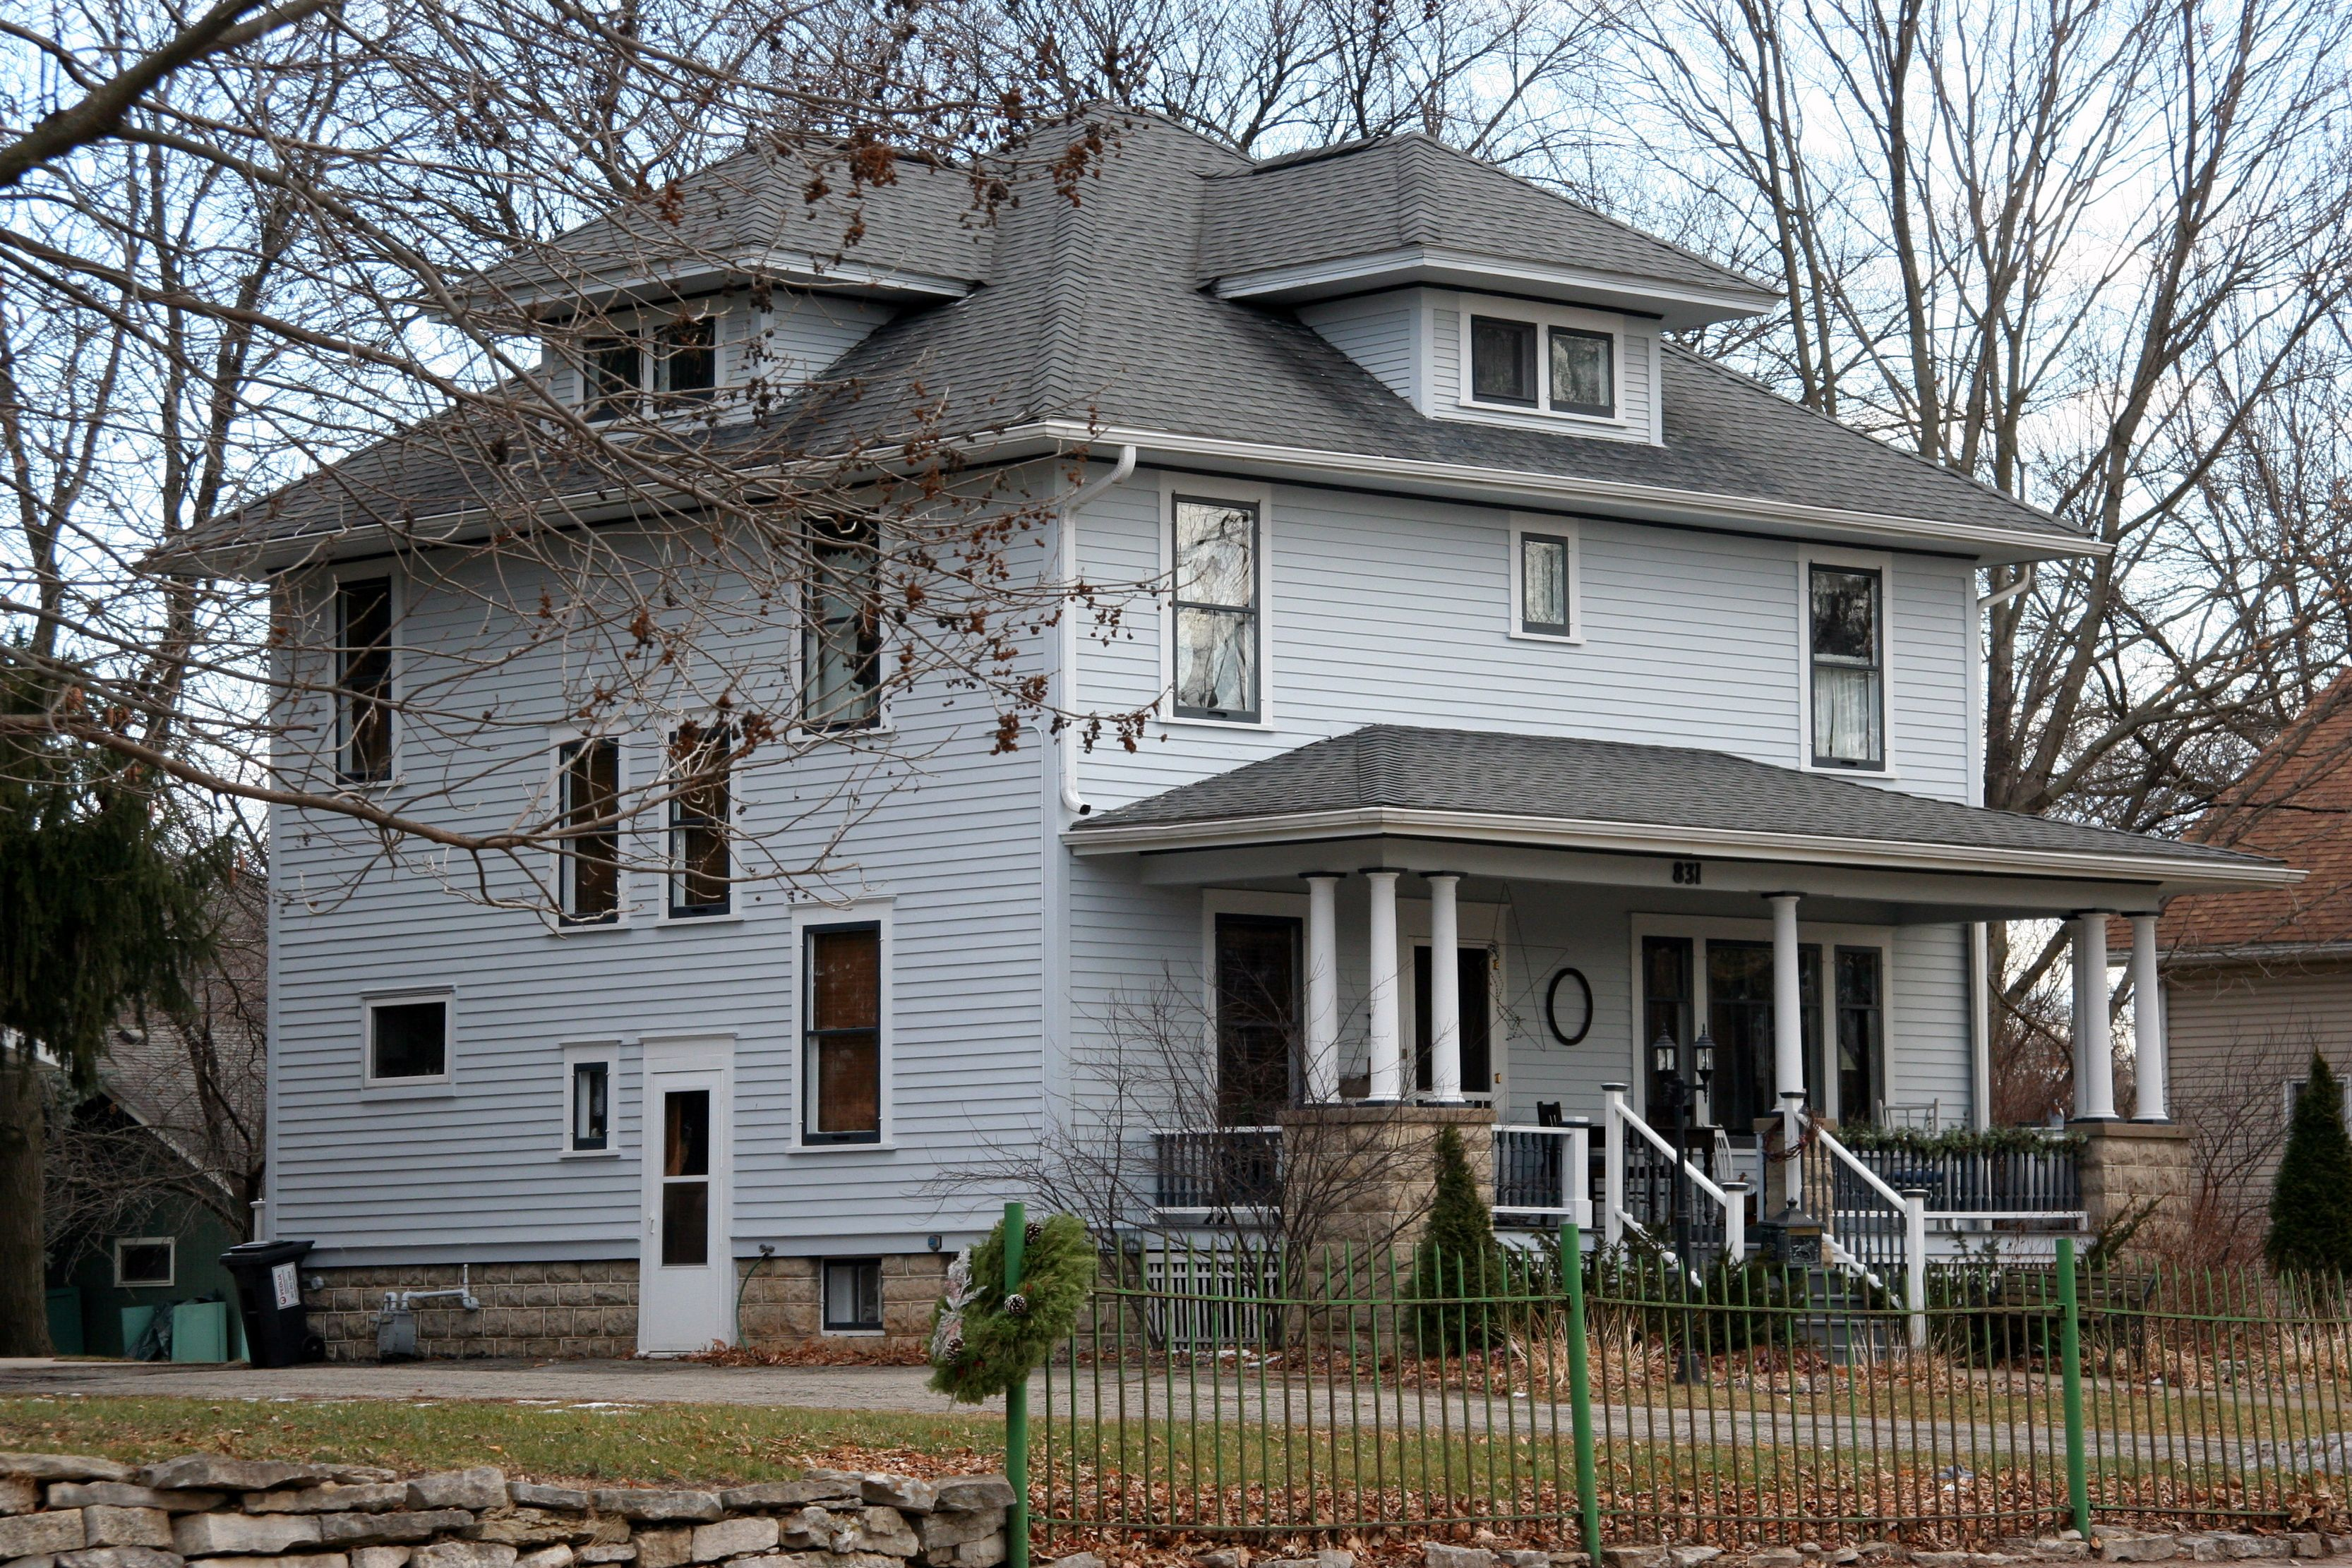 A Wood Frame American Foursquare House In Minnesota With